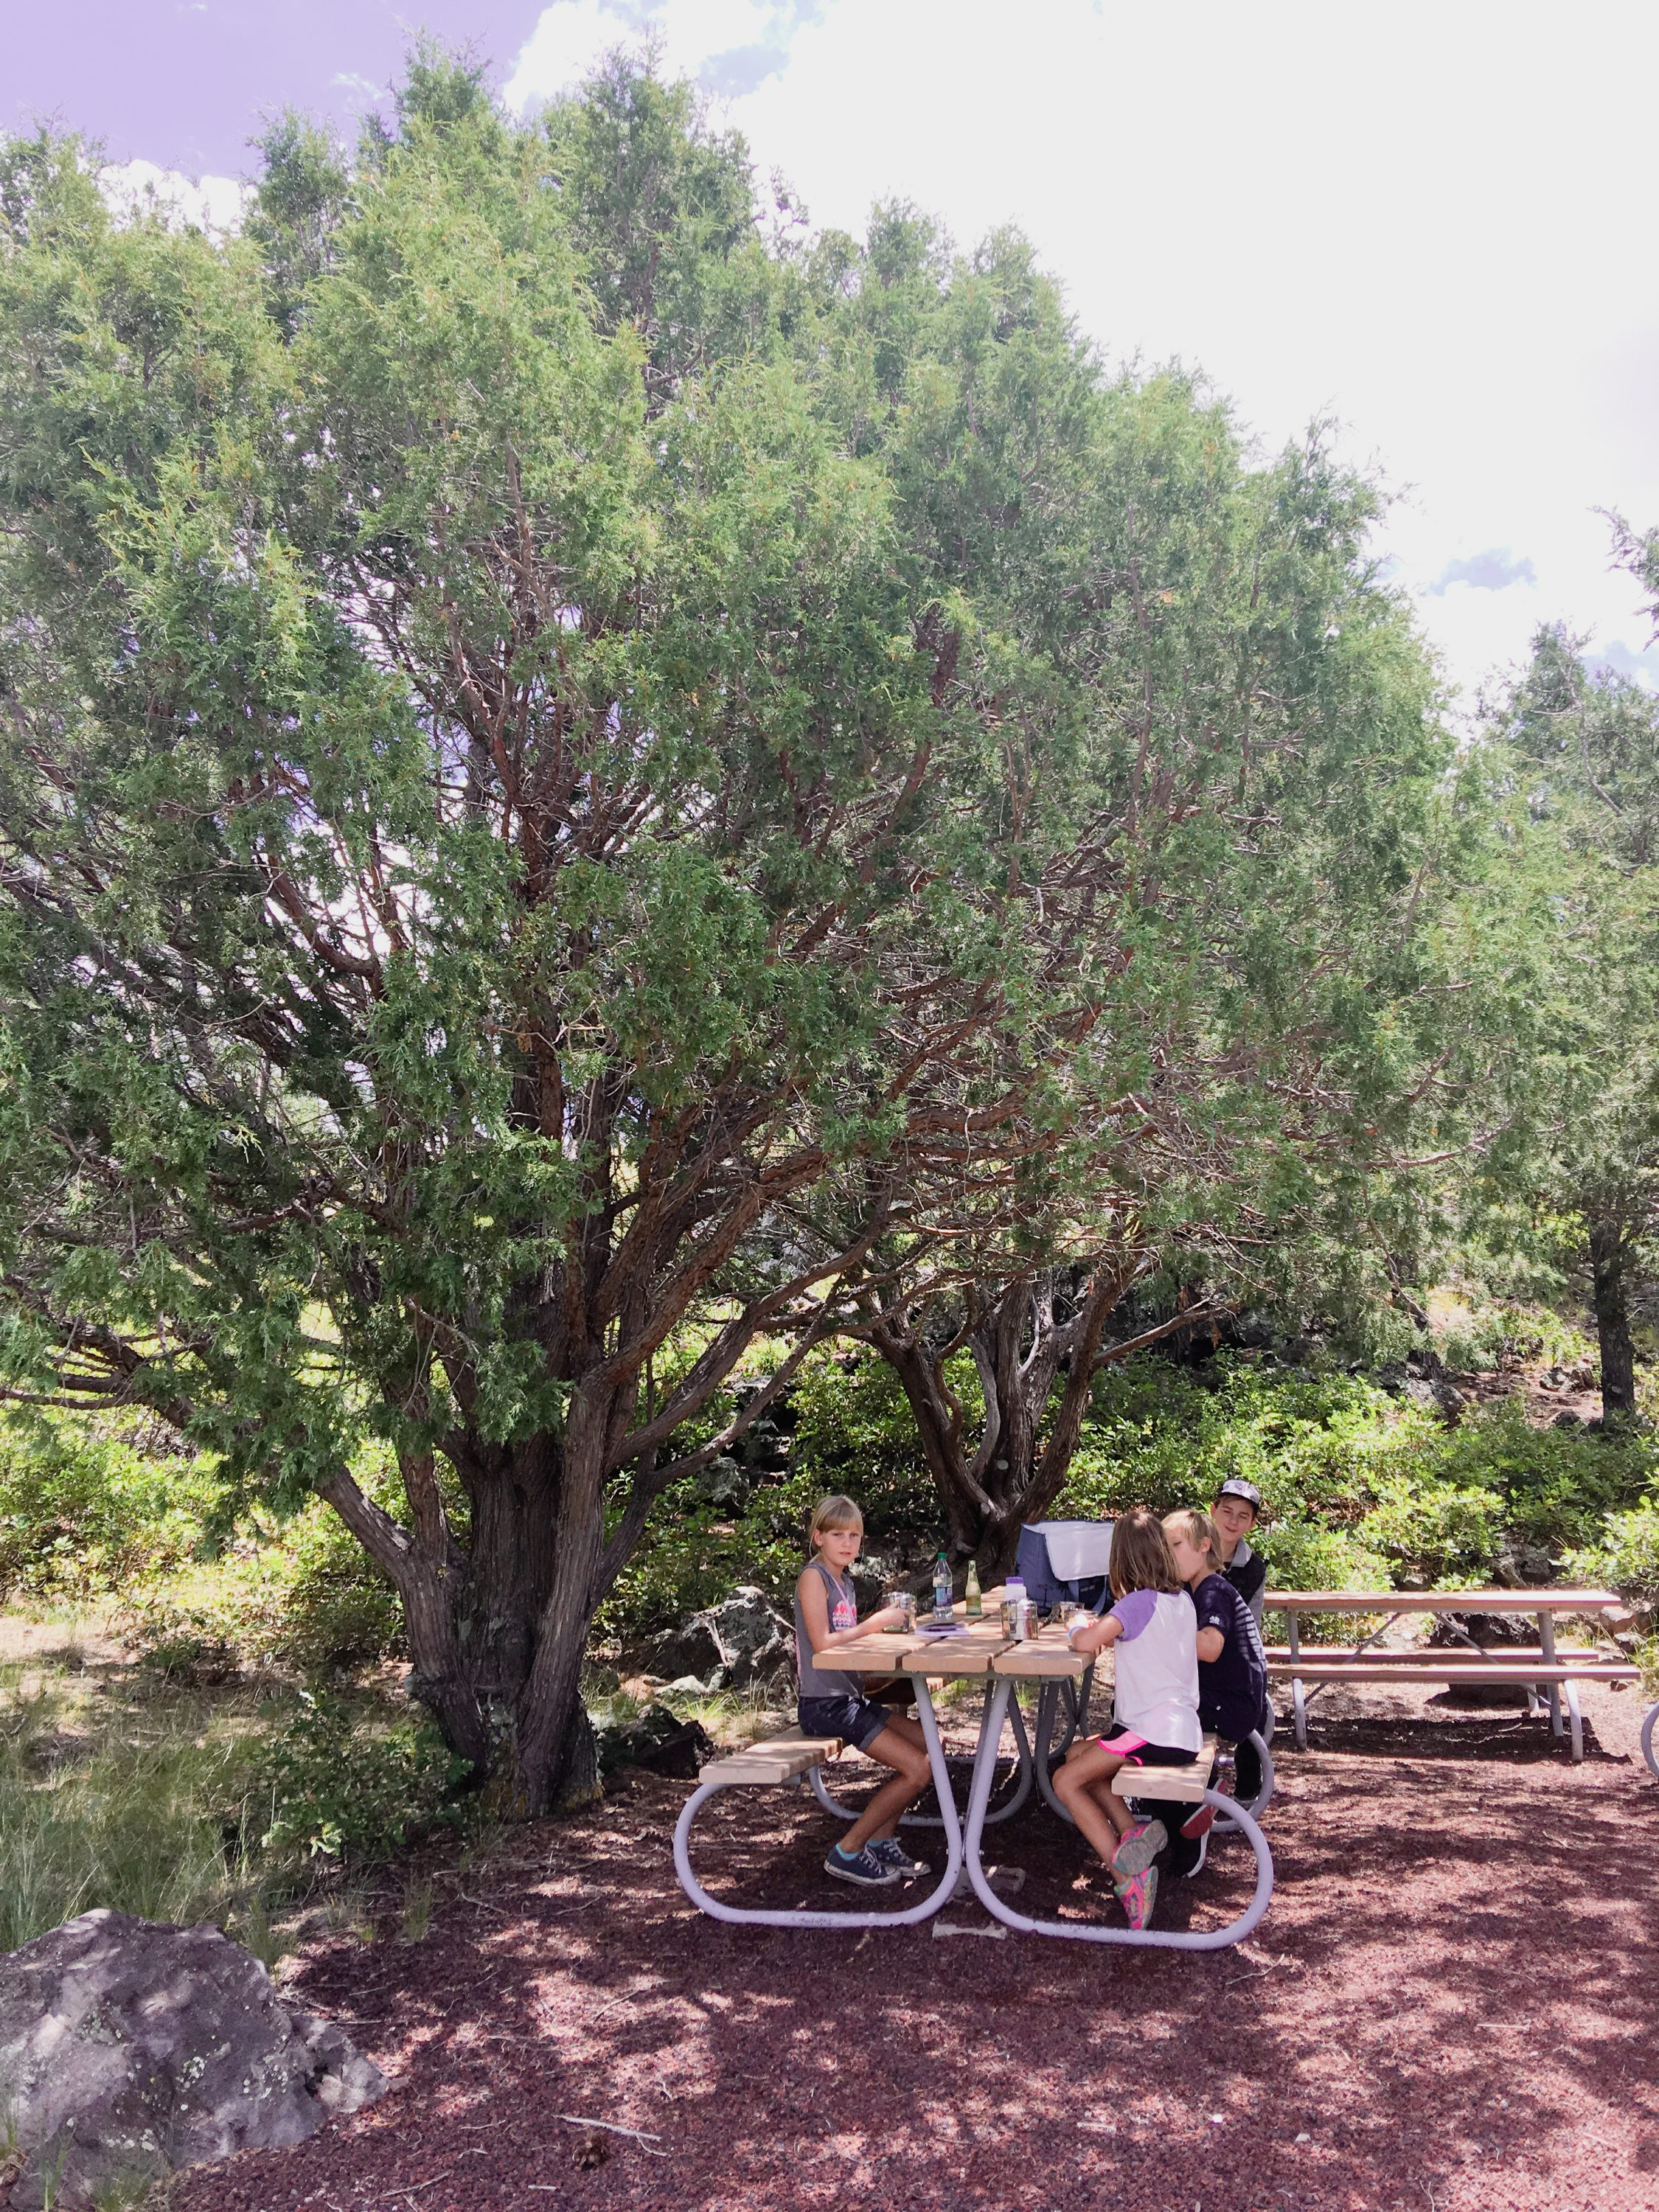 capulin-volcano-national-monument-picnic